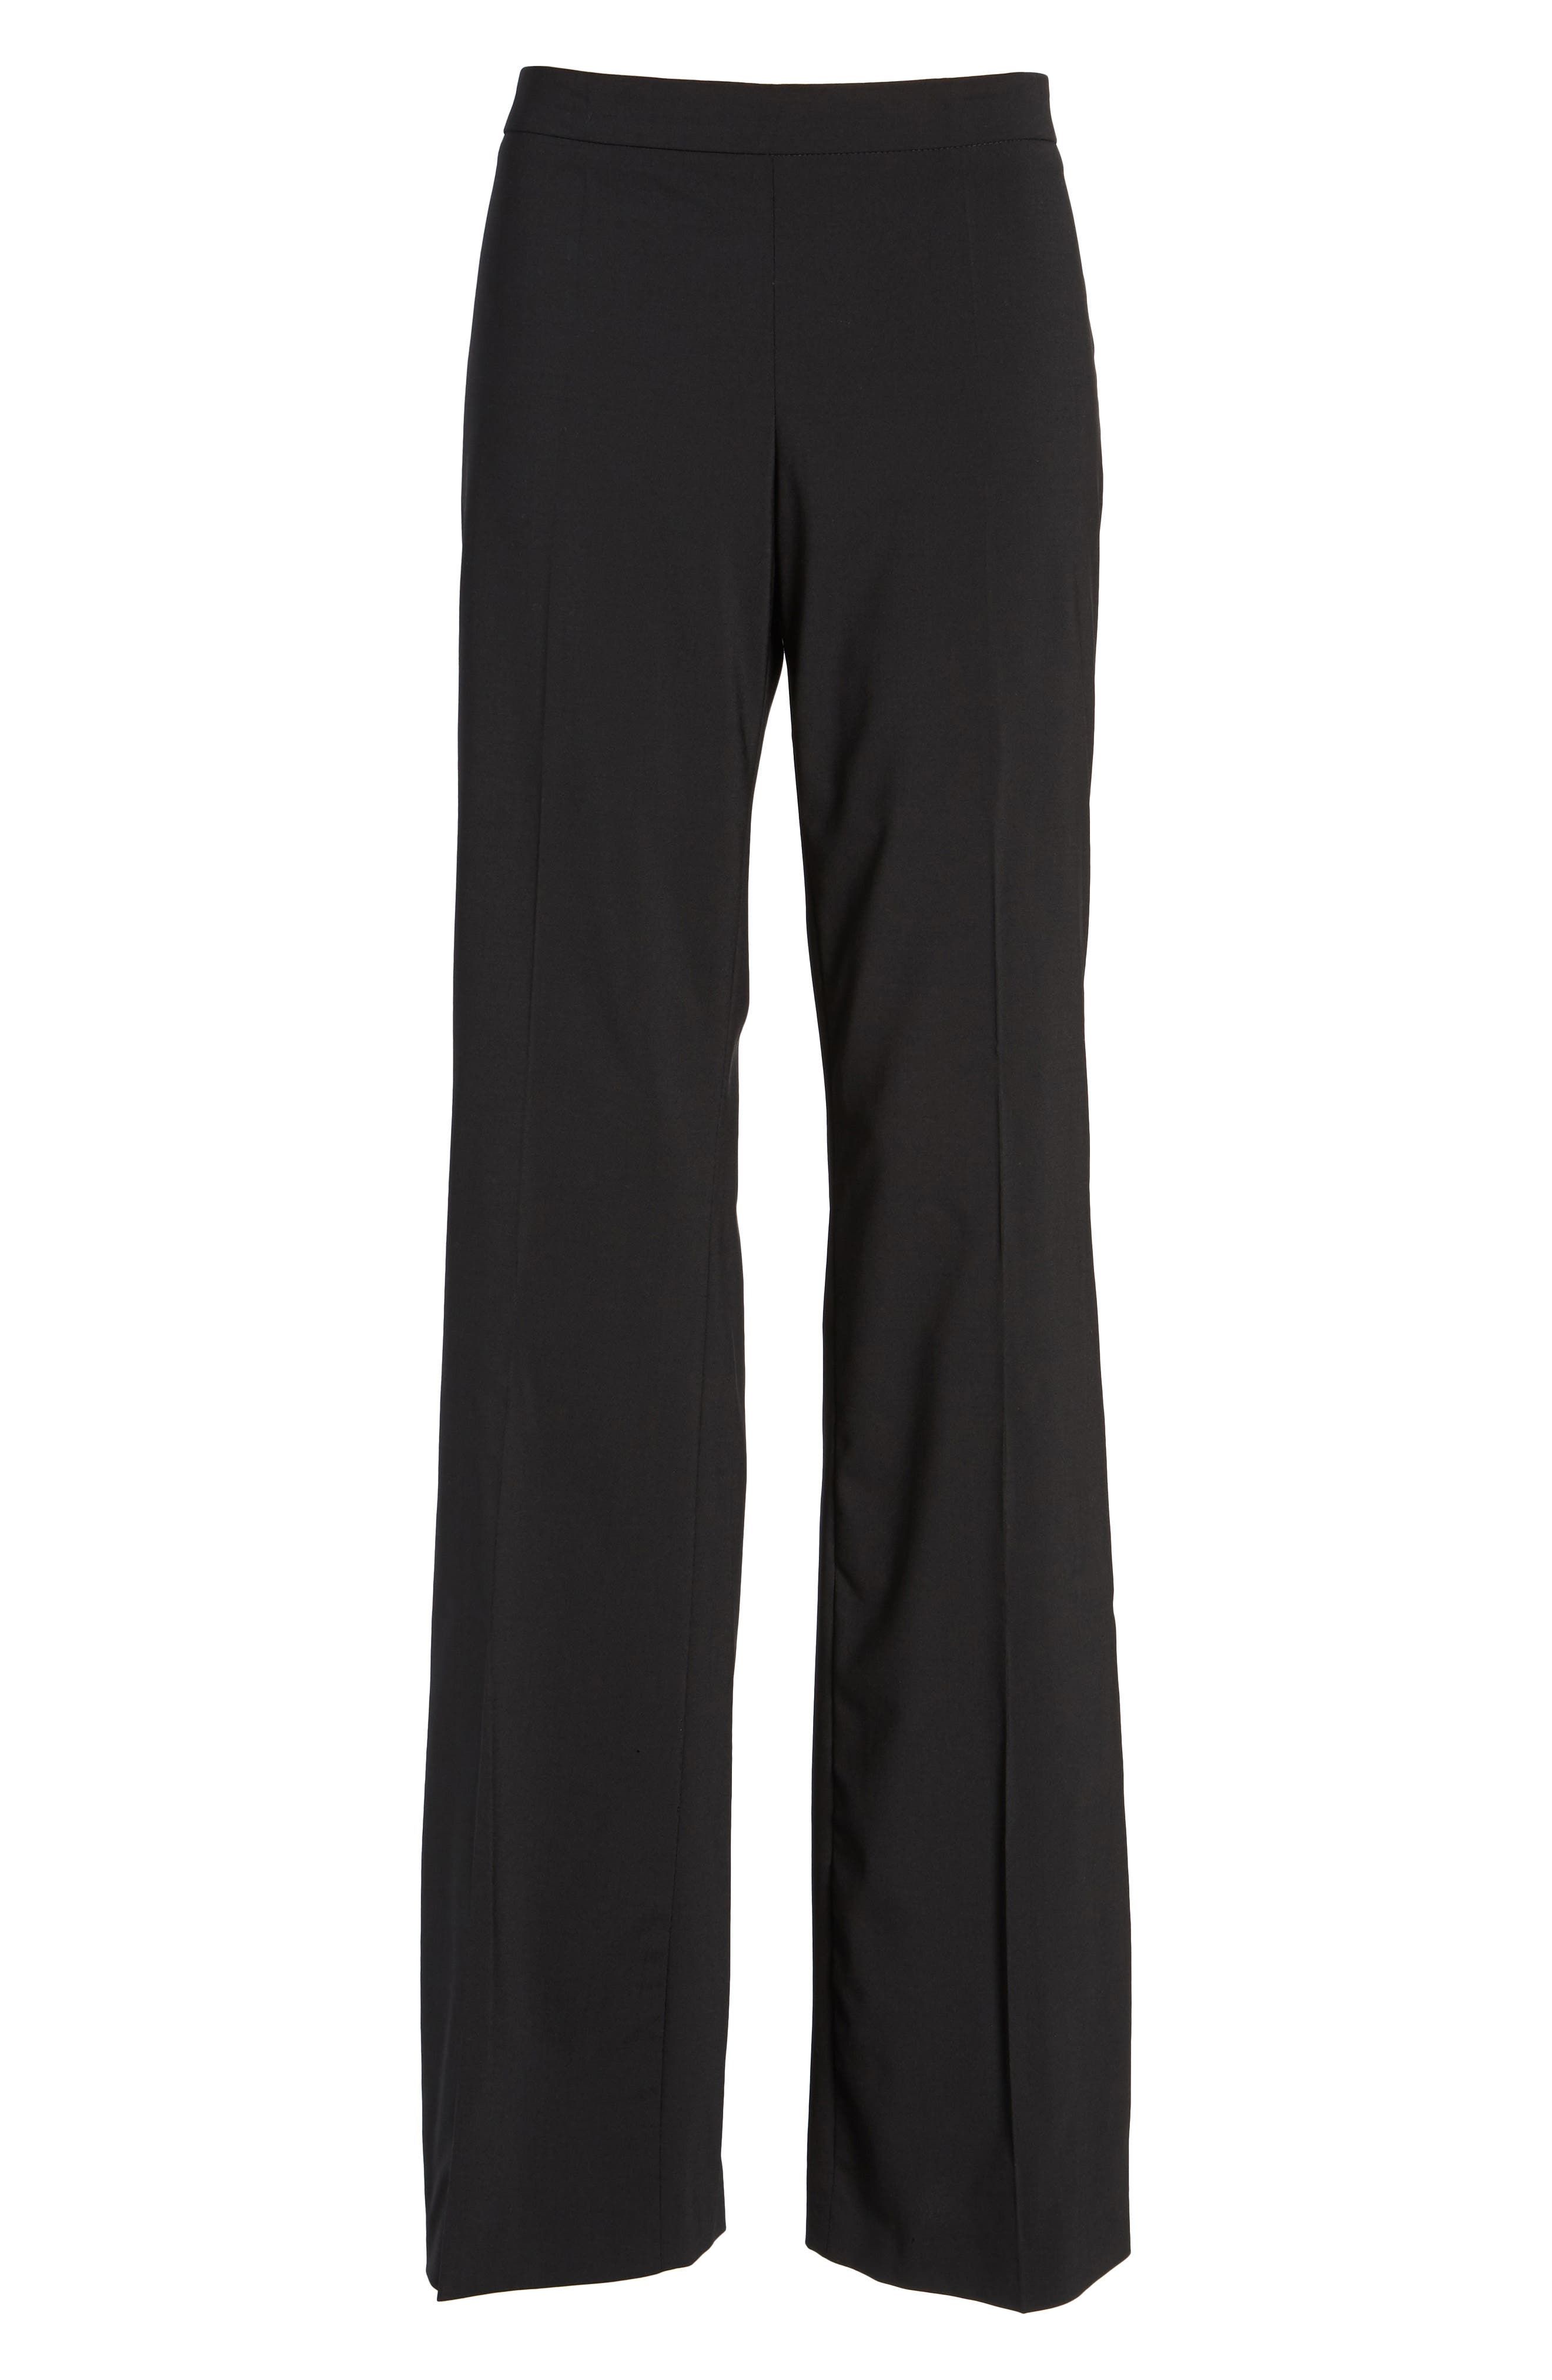 Tulea Side Zip Tropical Stretch Wool Trousers,                             Alternate thumbnail 7, color,                             BLACK